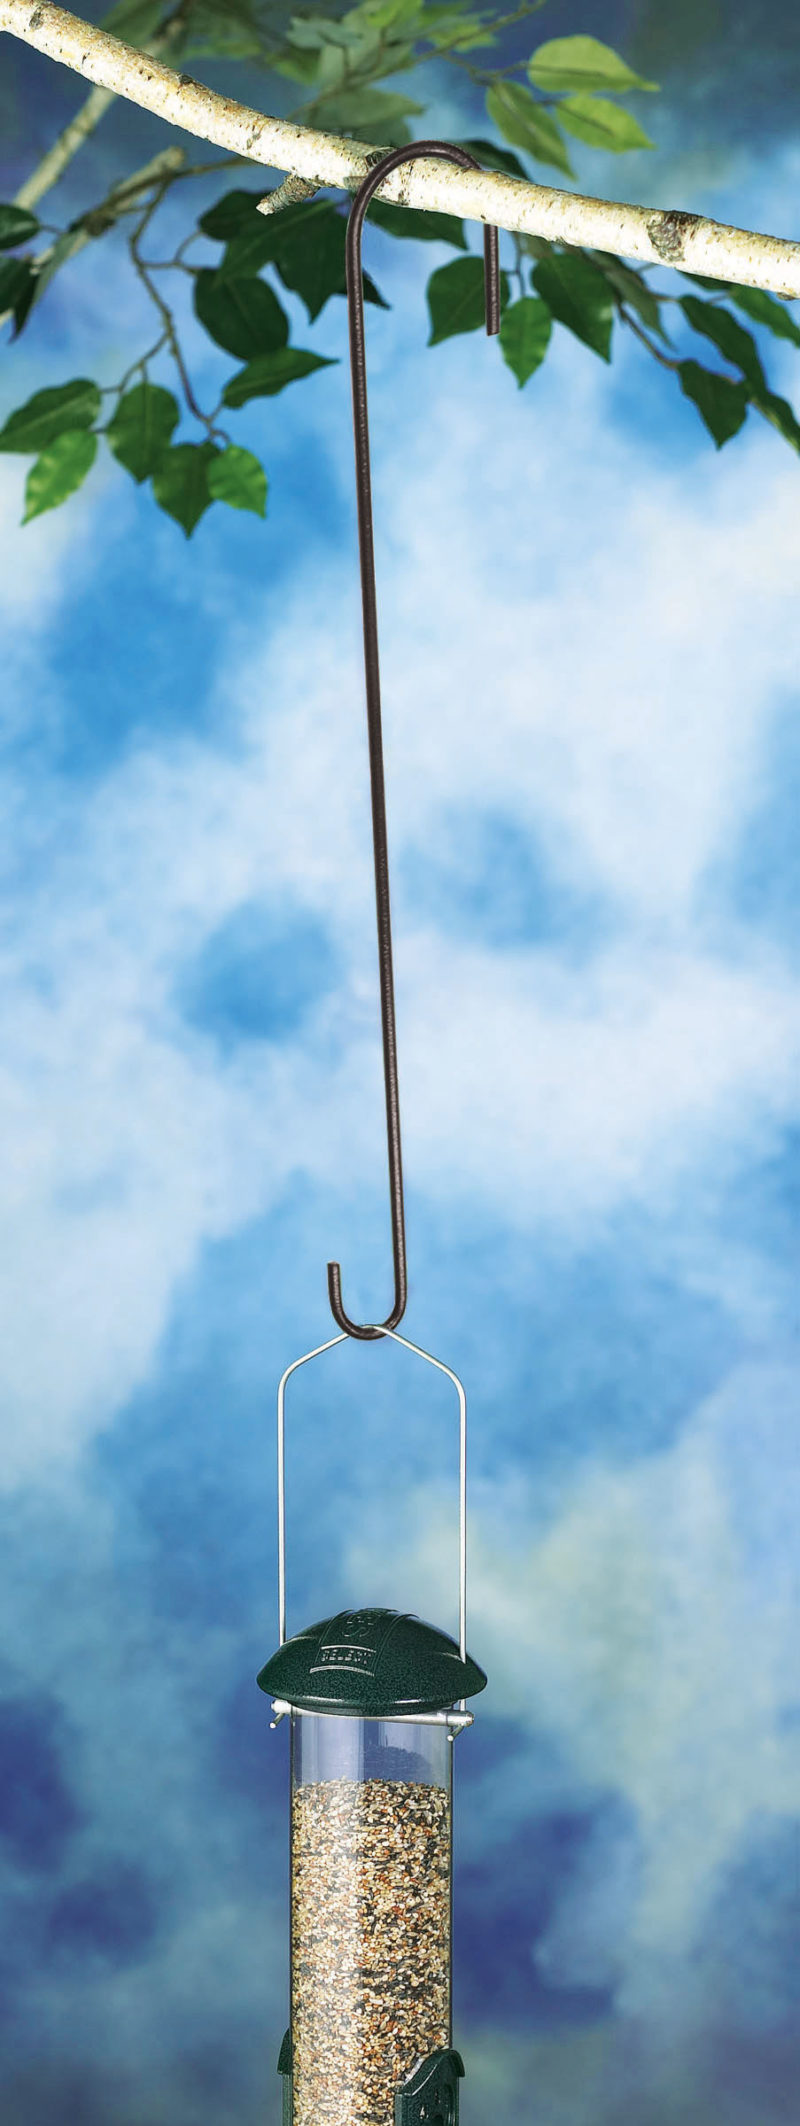 bird feeder hanging from Stokes Select 18 inch Extension Hook